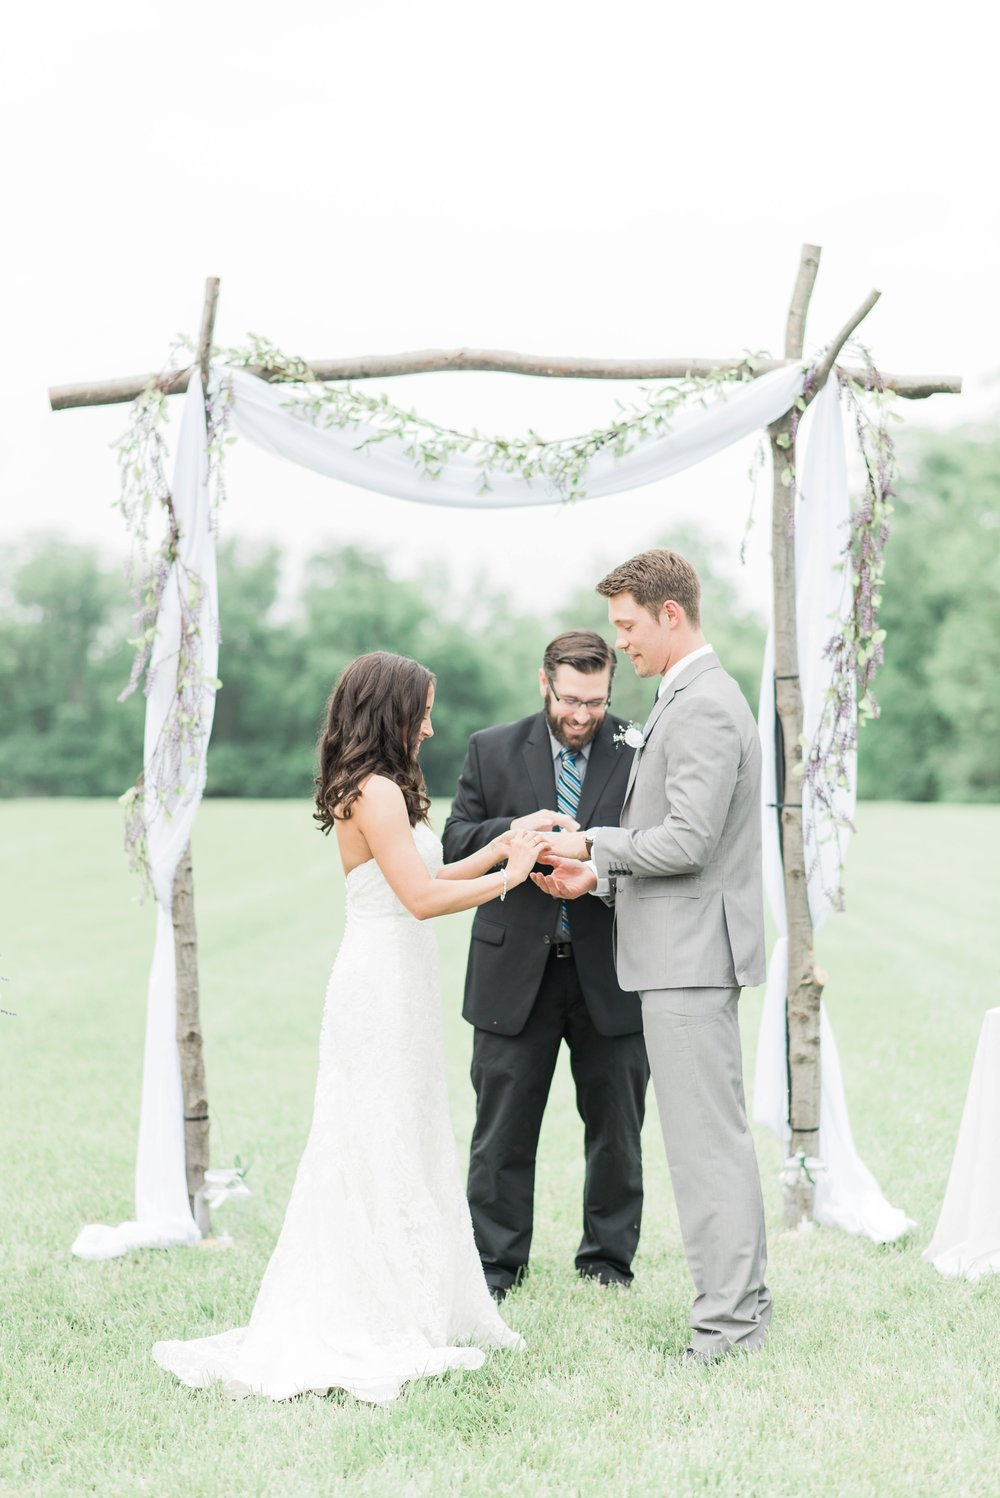 niederman-farm-wedding-cincinnati-ohio-photographer_0058.jpg